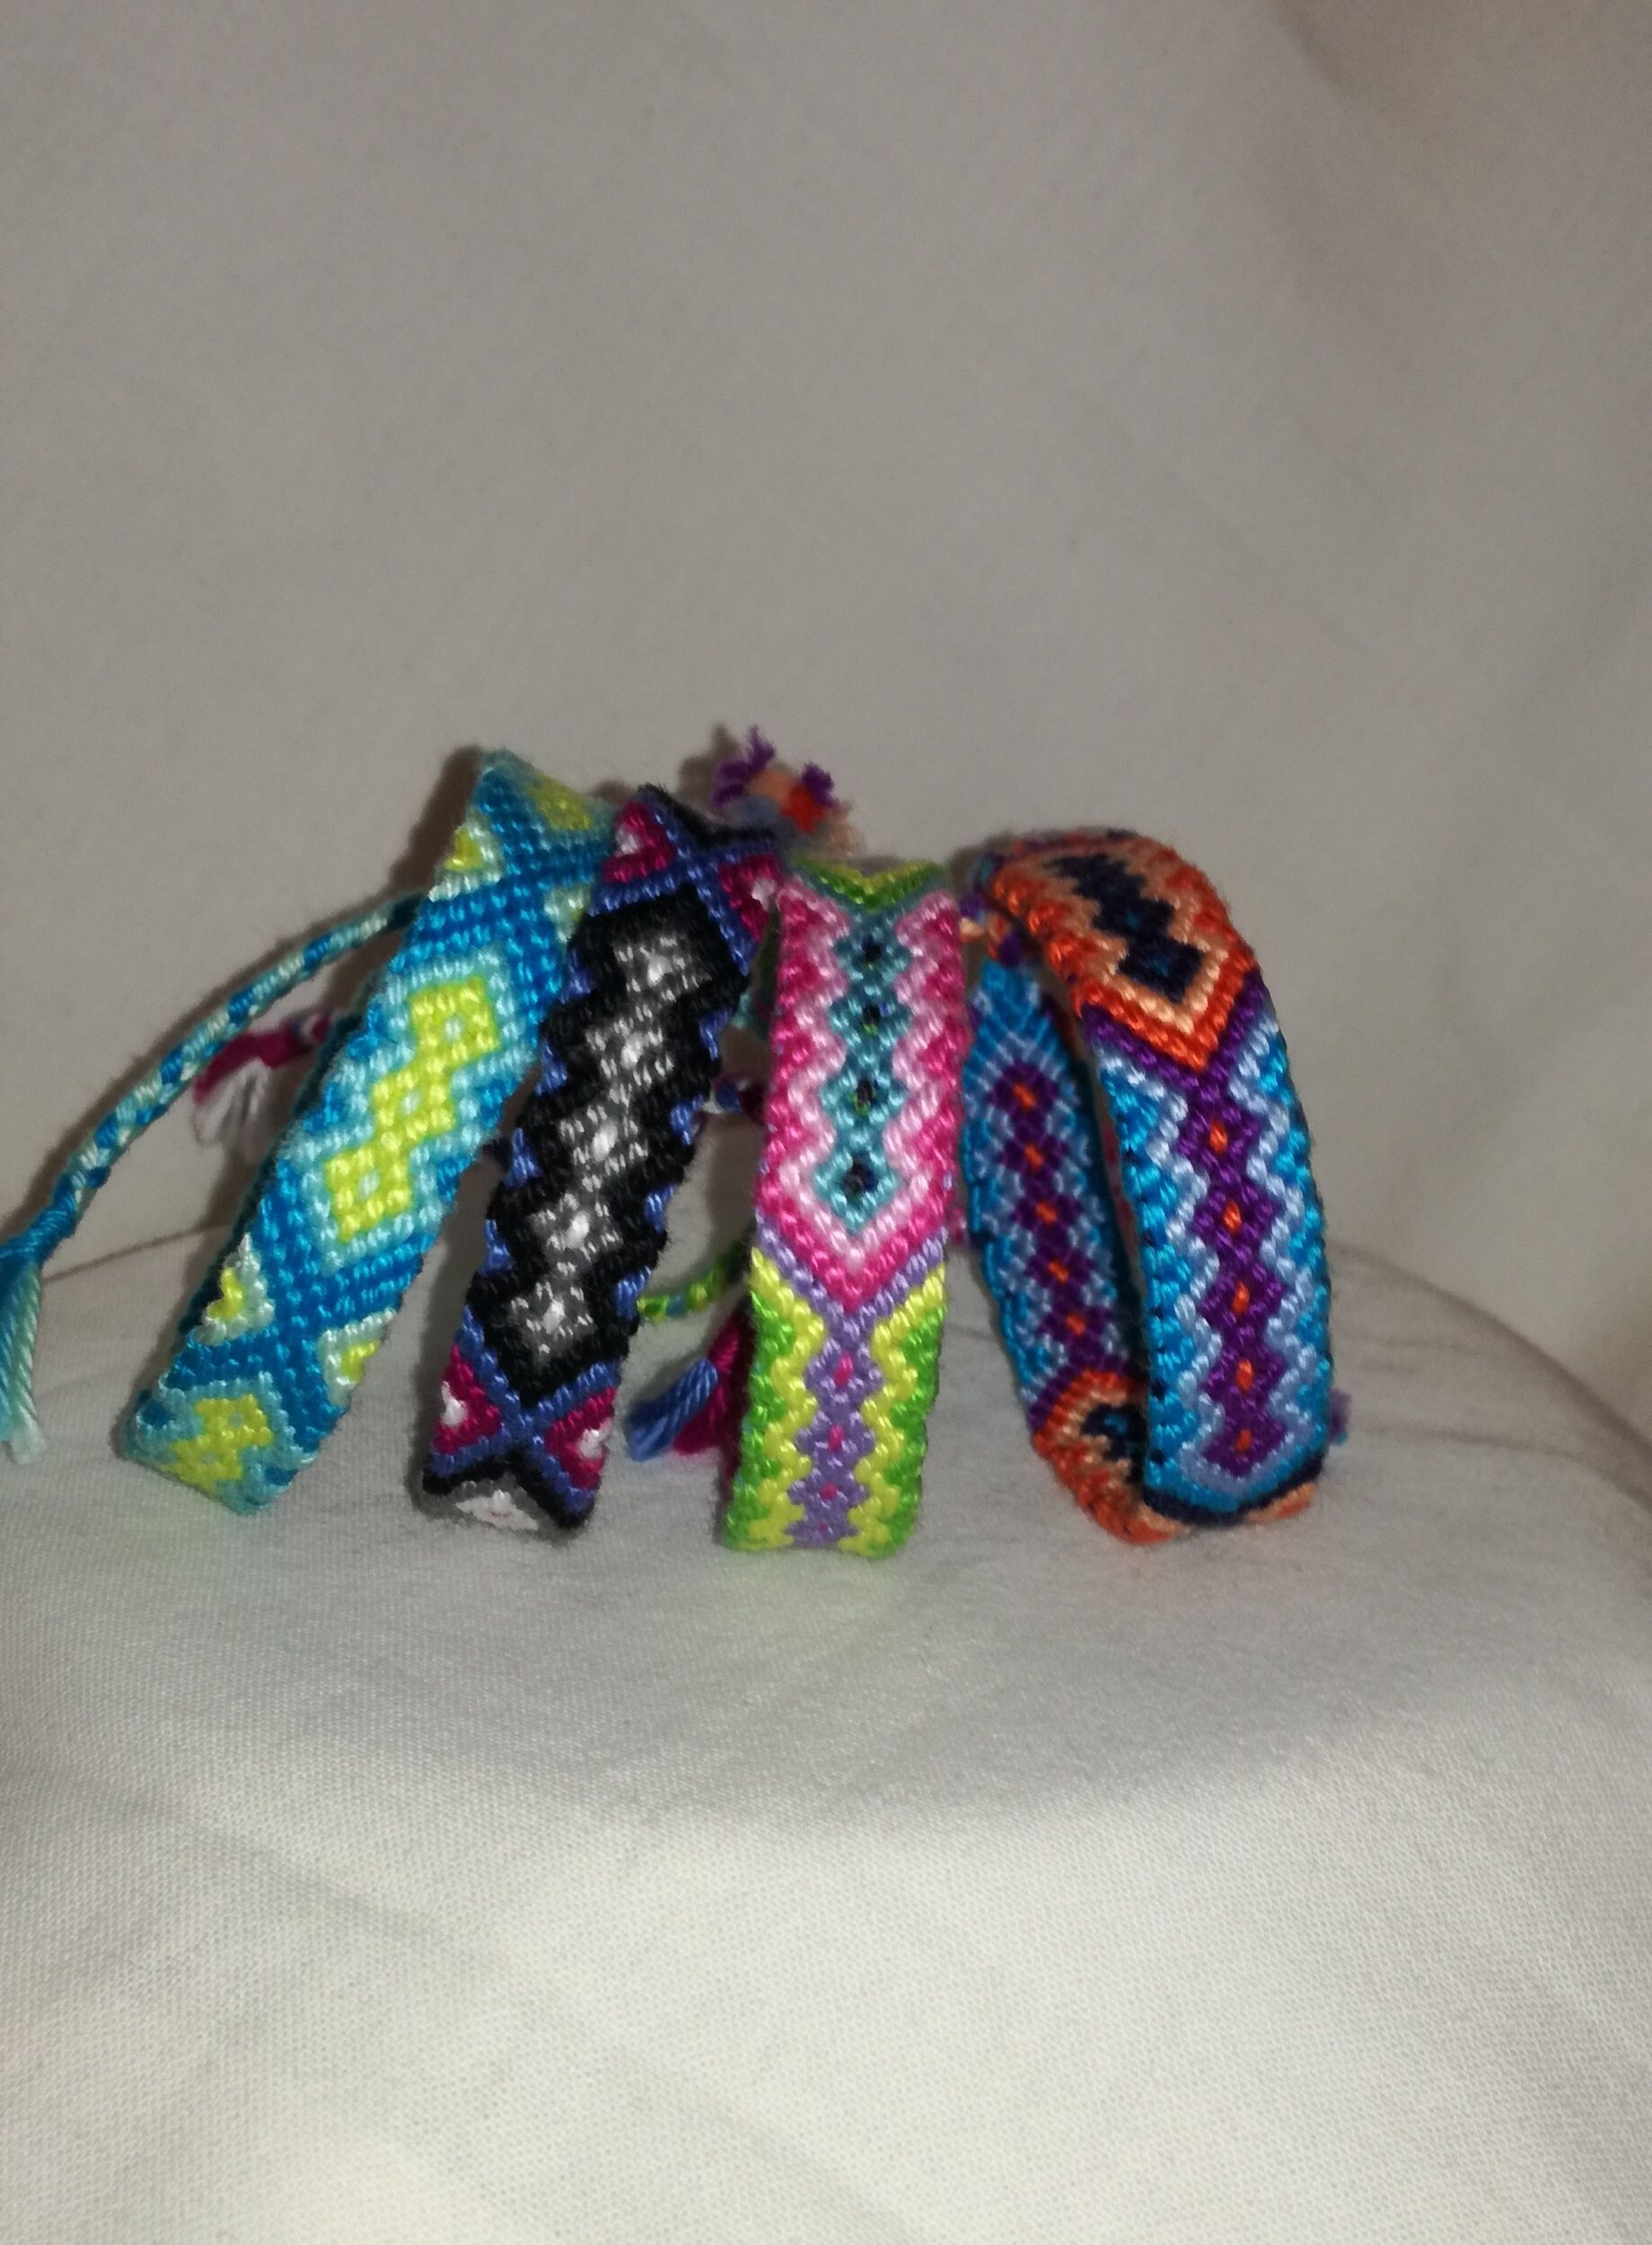 handwoven the gift tie friendship tribal jewelry bracelet woven knot everyday string for art